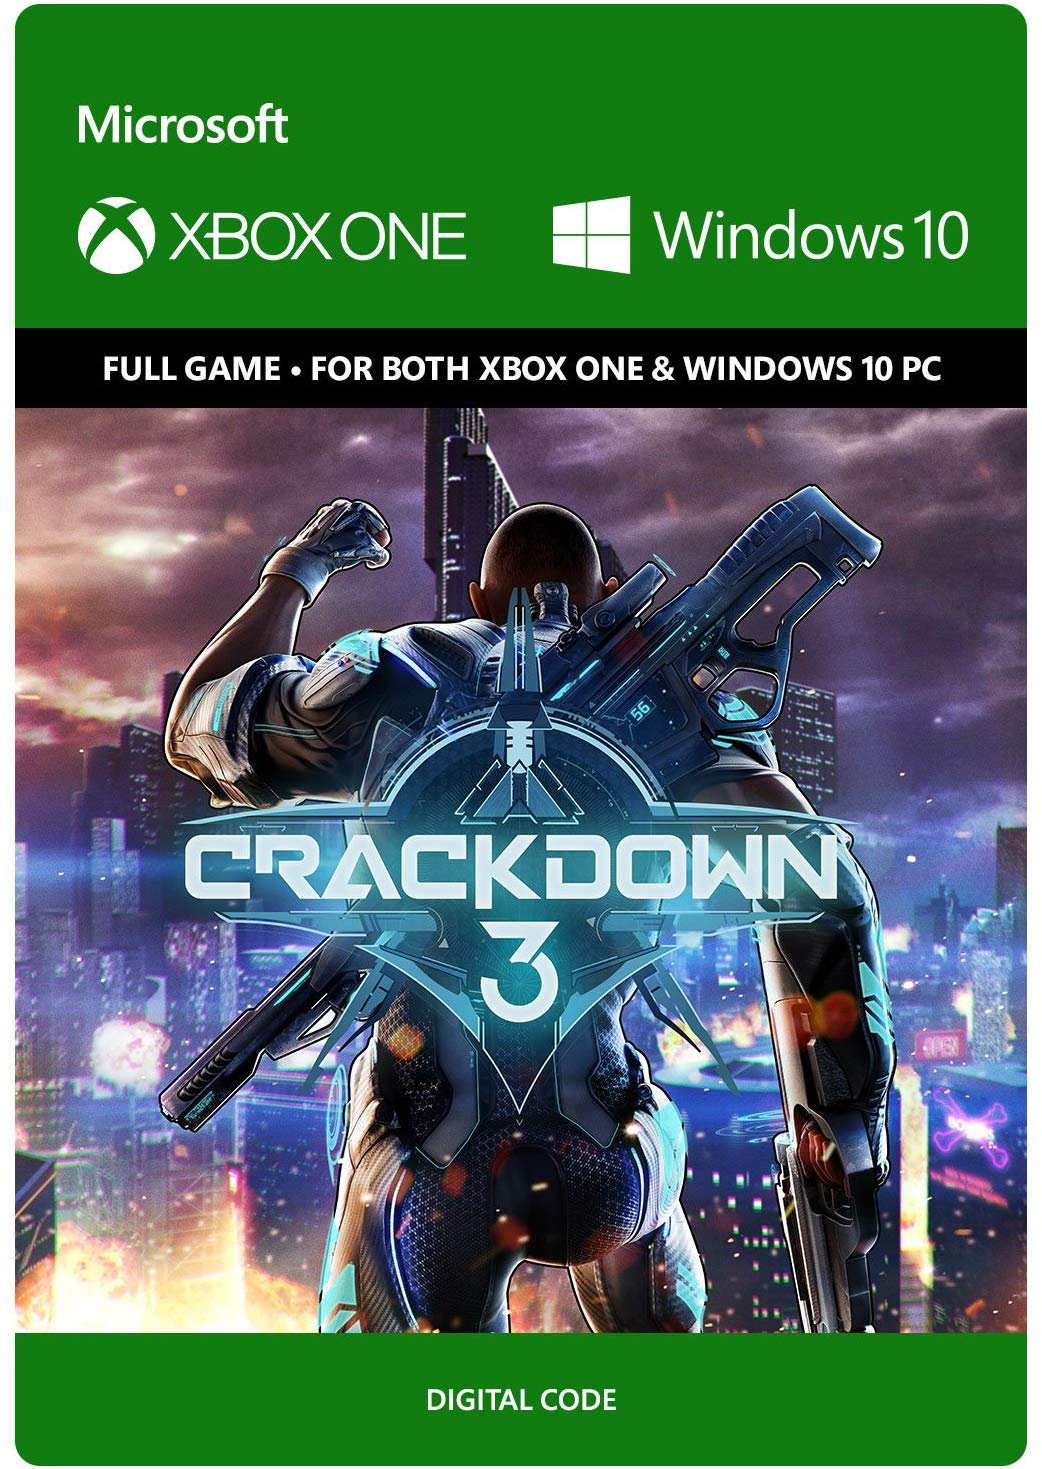 https://img5.downloadha.com/hosein/files/2019/02/Crackdown-3-pc-cover-large.jpg